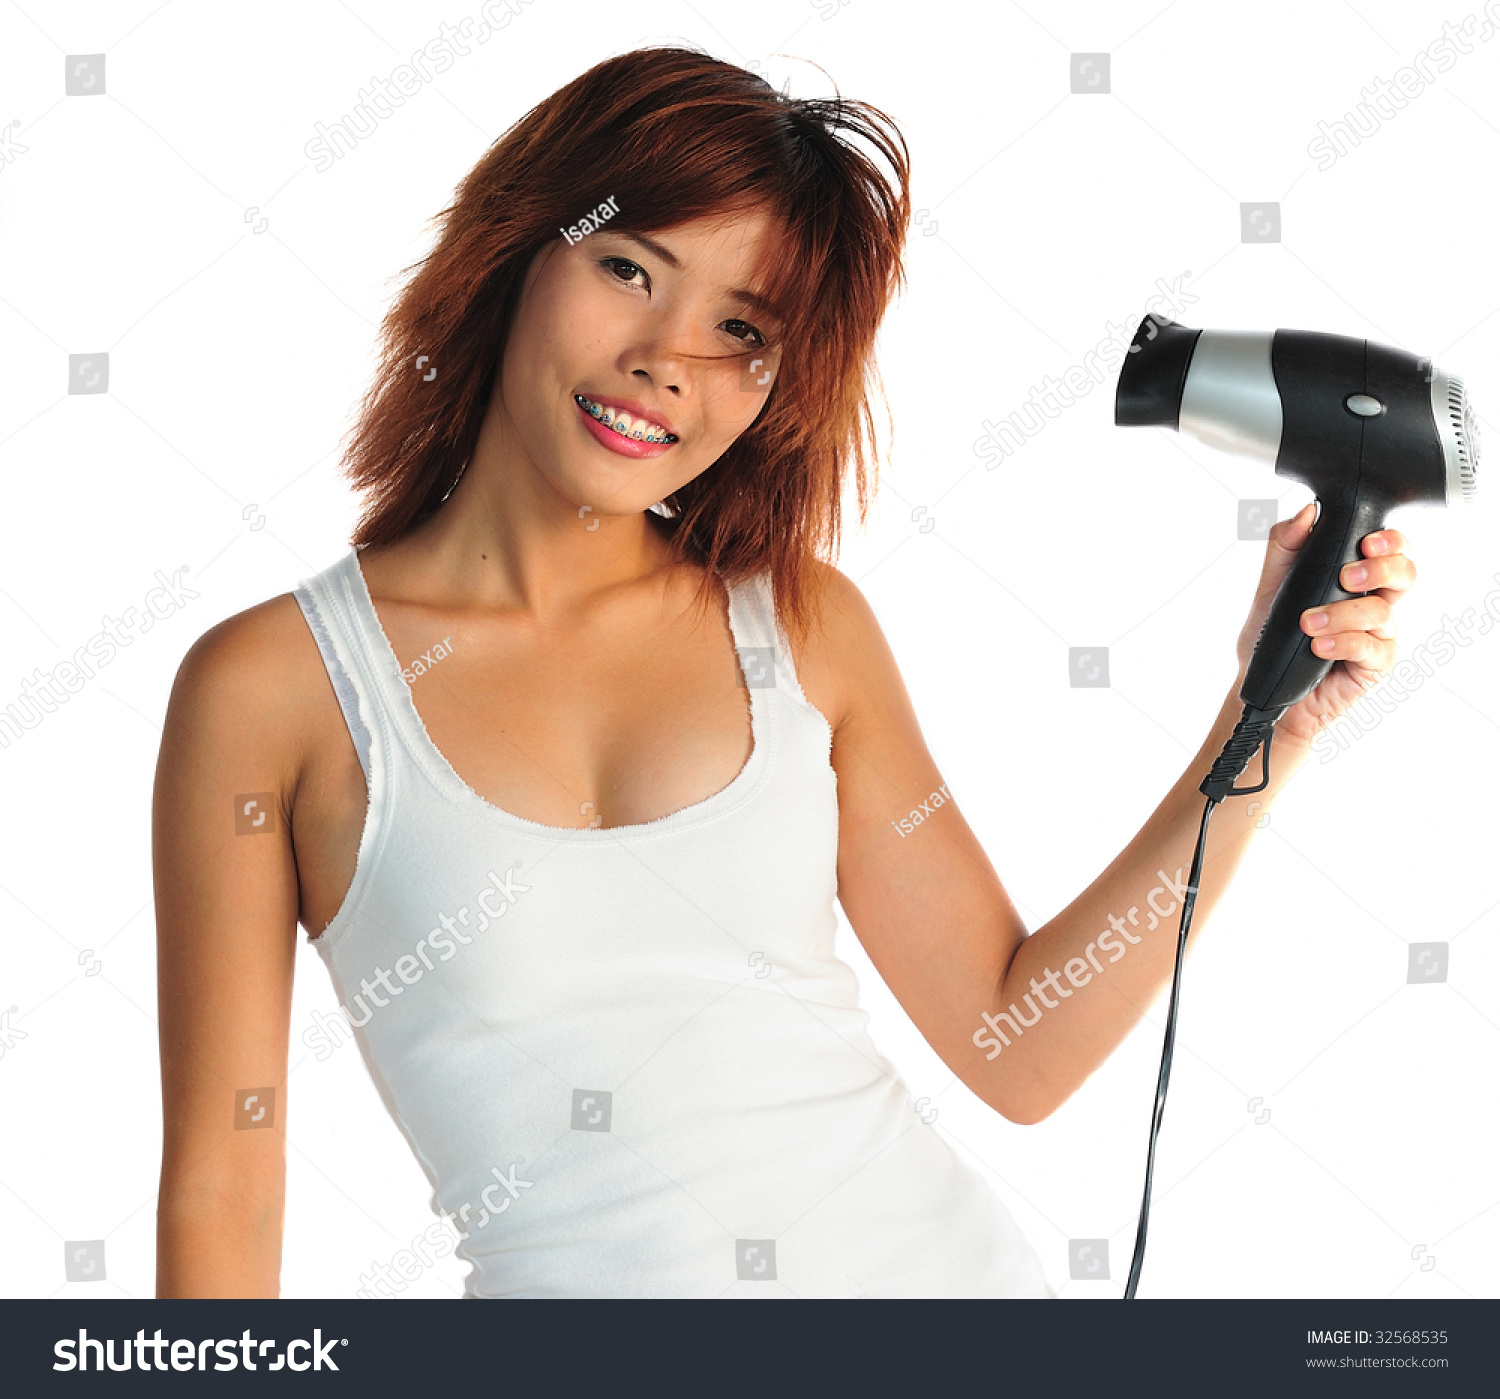 Japanese Hair Dryer >> Very Seductive Young Asian Woman Eating Stock Photo 32568535 - Shutterstock